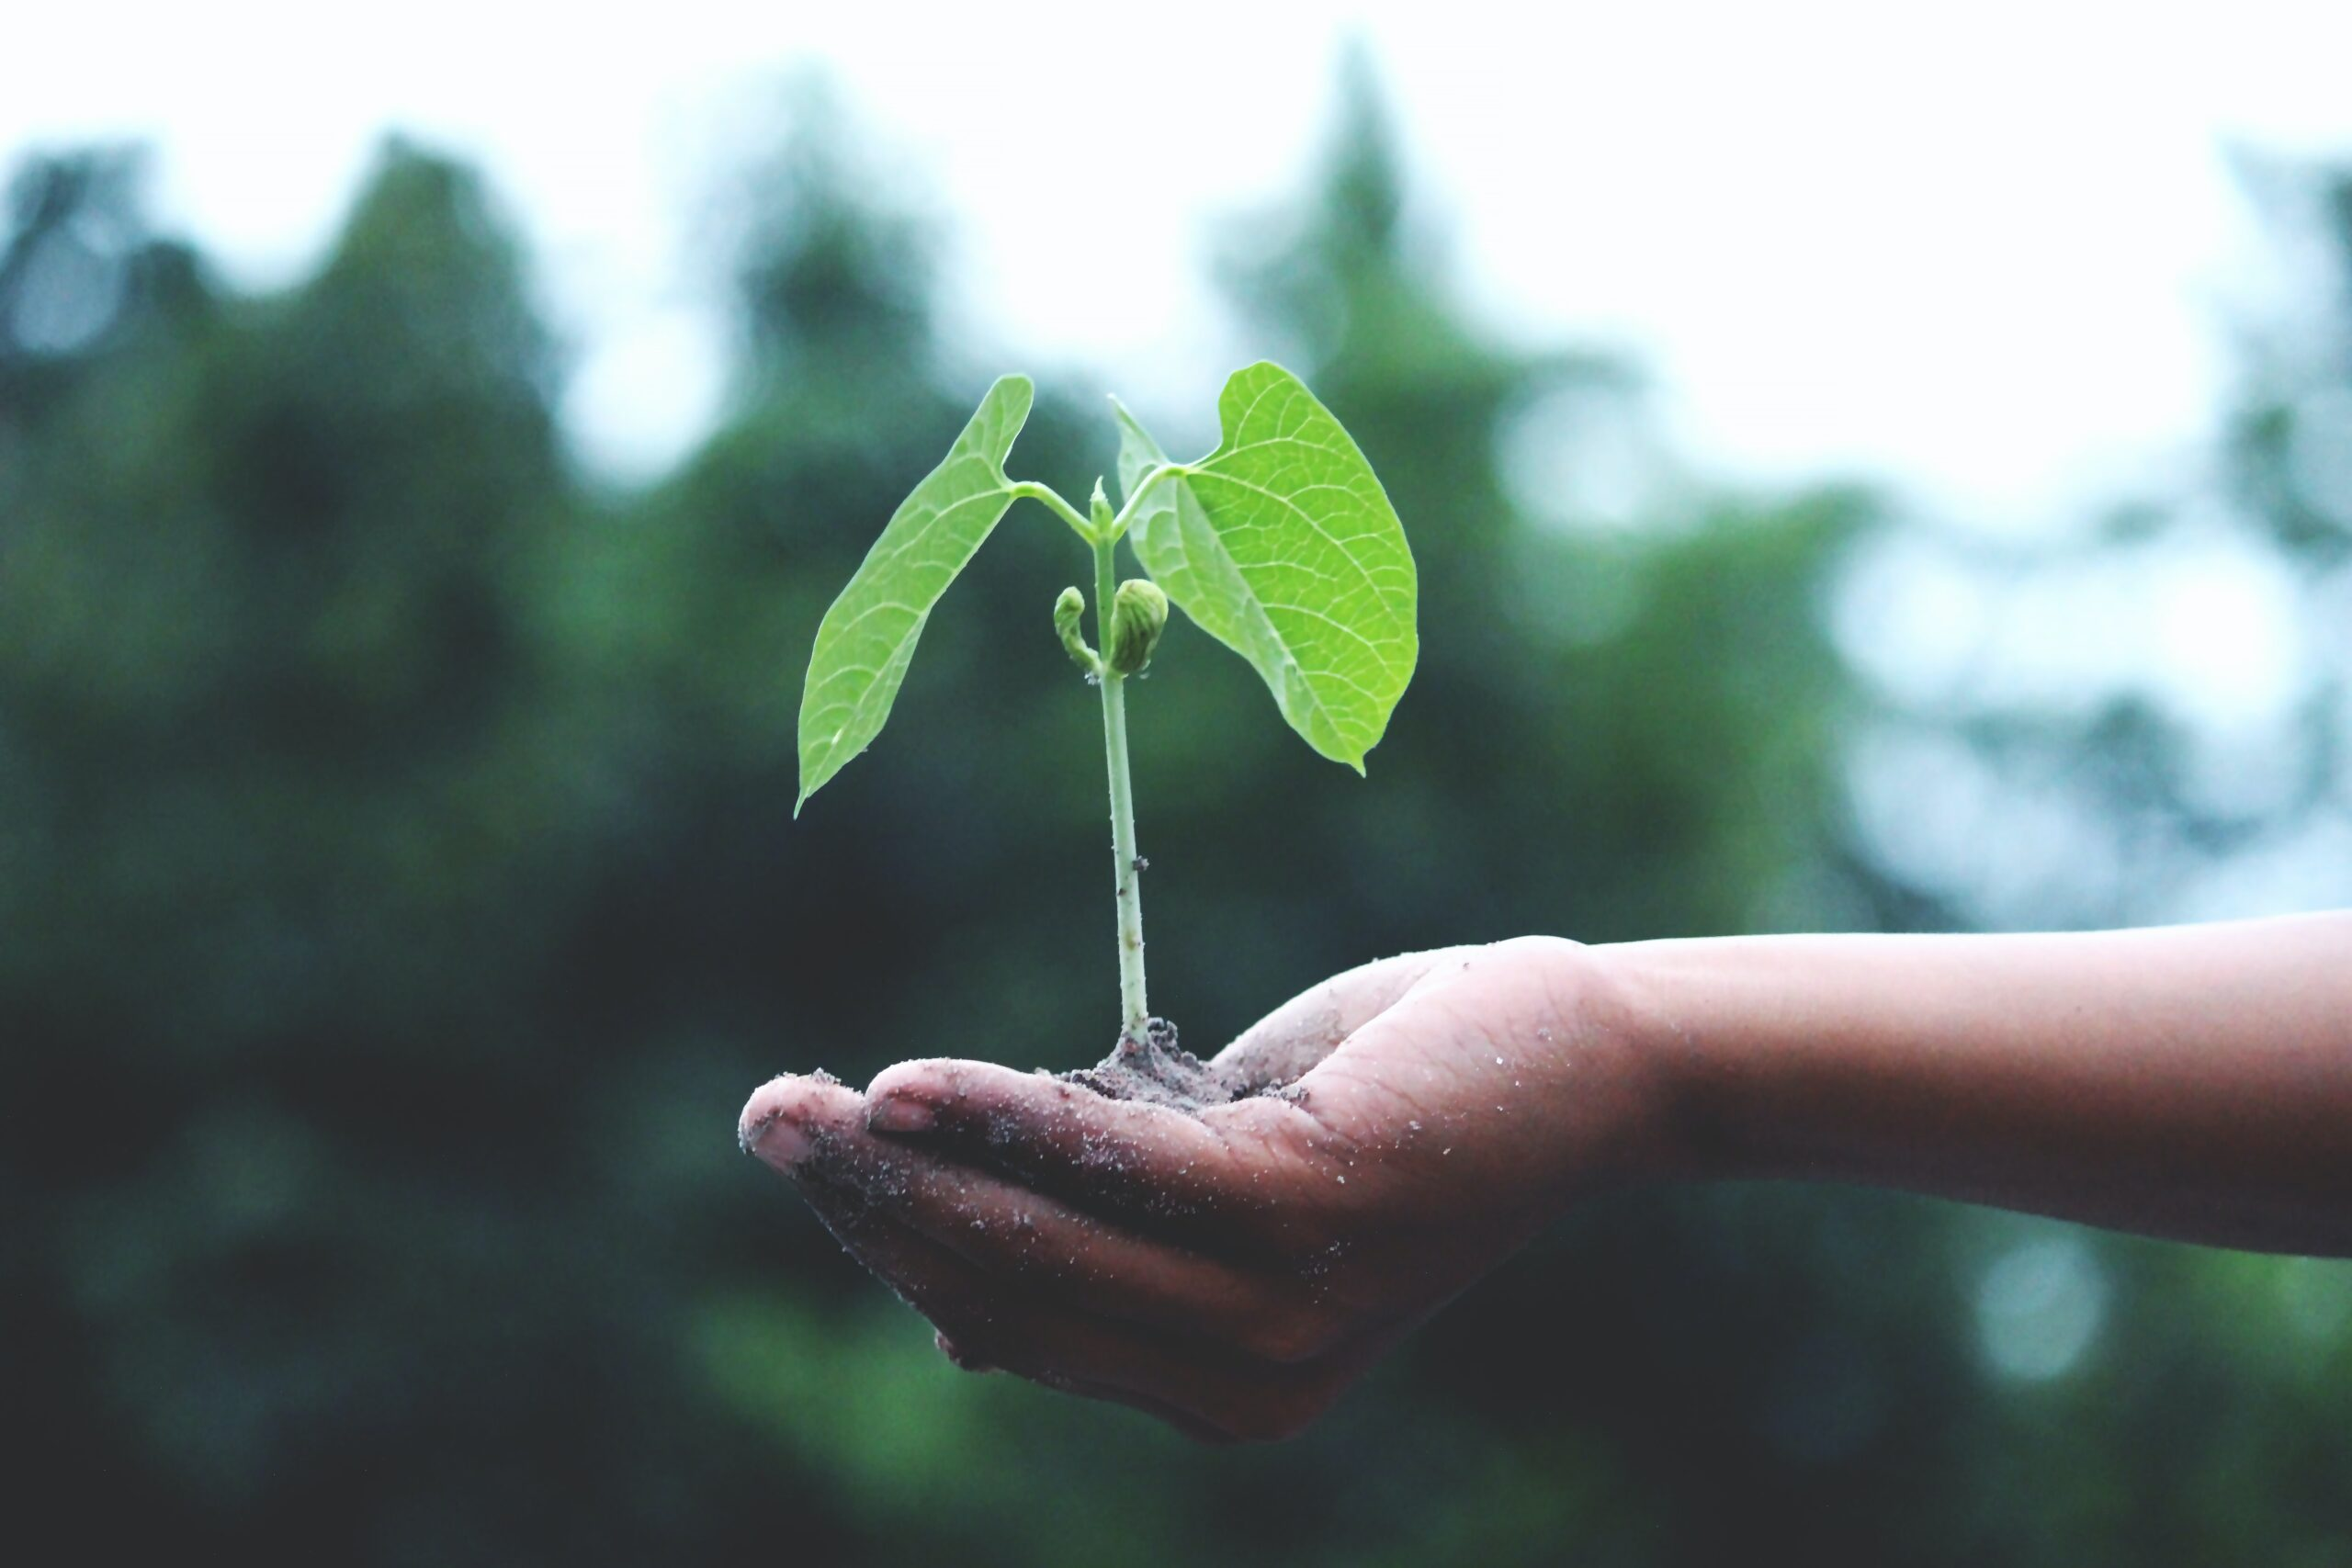 Plant Seeds of Growth in Your Community